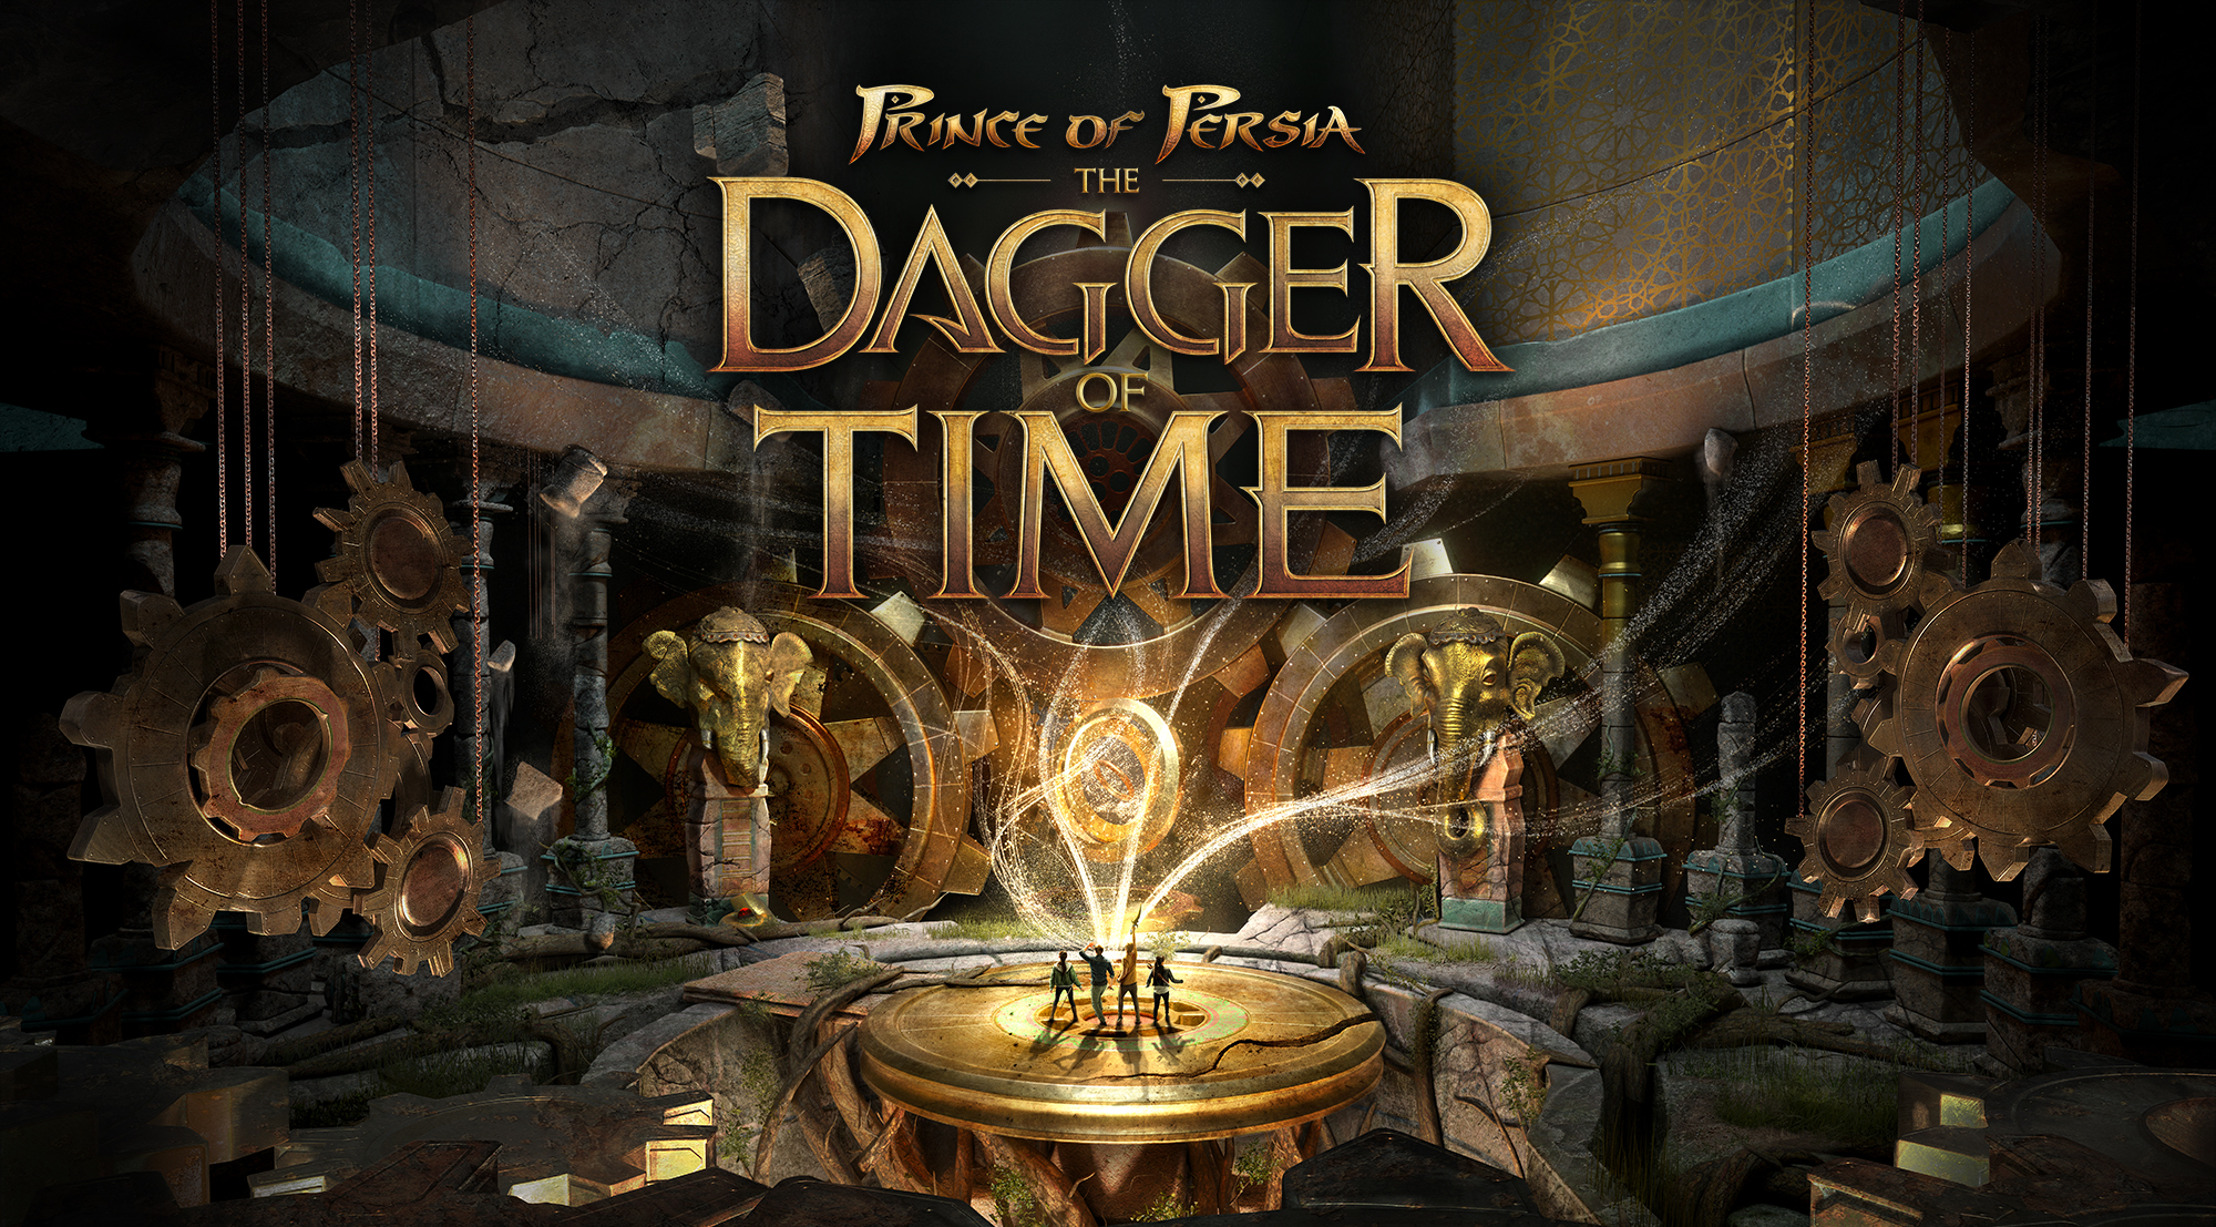 Preview: PRINCE OF PERSIA®: THE DAGGER OF TIME - UBISOFT KÜNDIGT NEUEN VR-ESCAPE ROOM AN